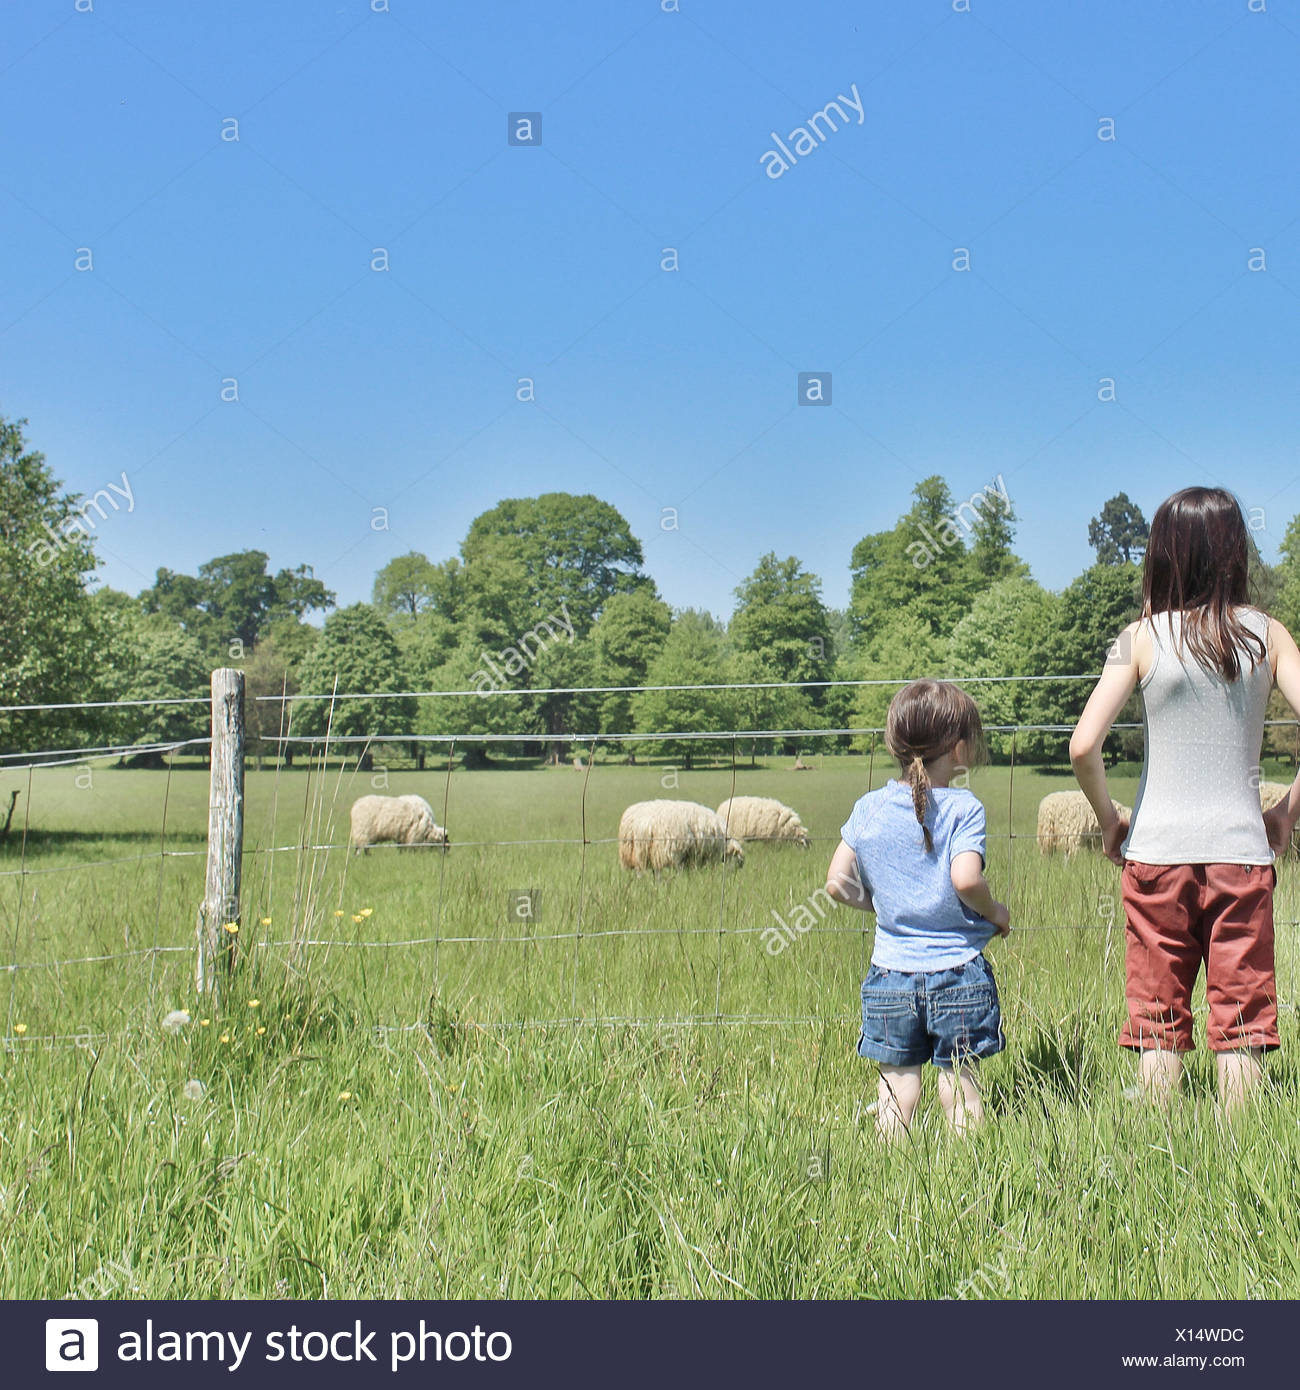 Two girls looking at sheep in a field - Stock Image